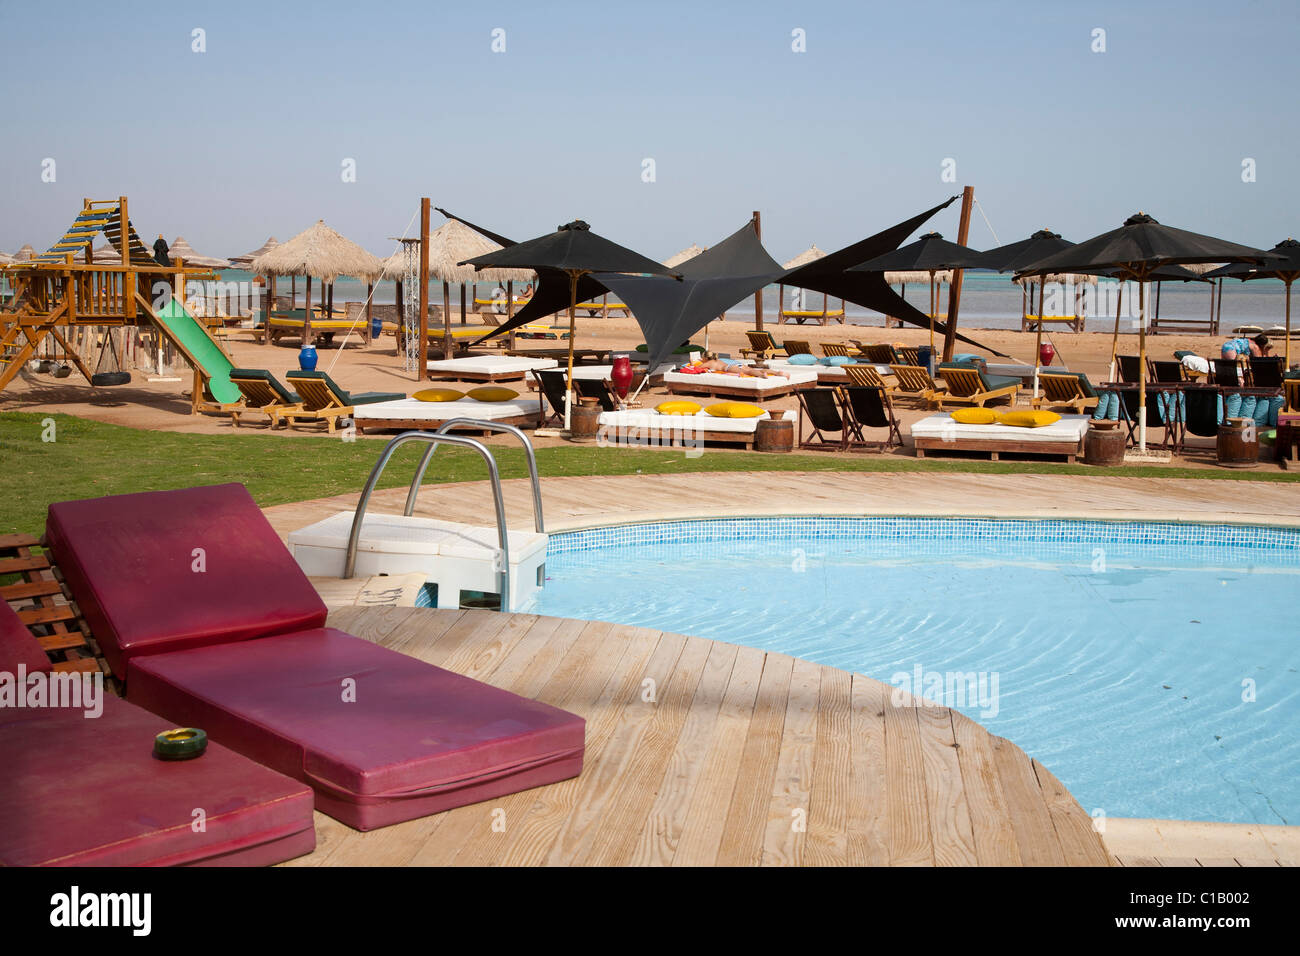 Seating area and pool at a beach bar in Sharm El Sheikh Nabq beach - Stock Image